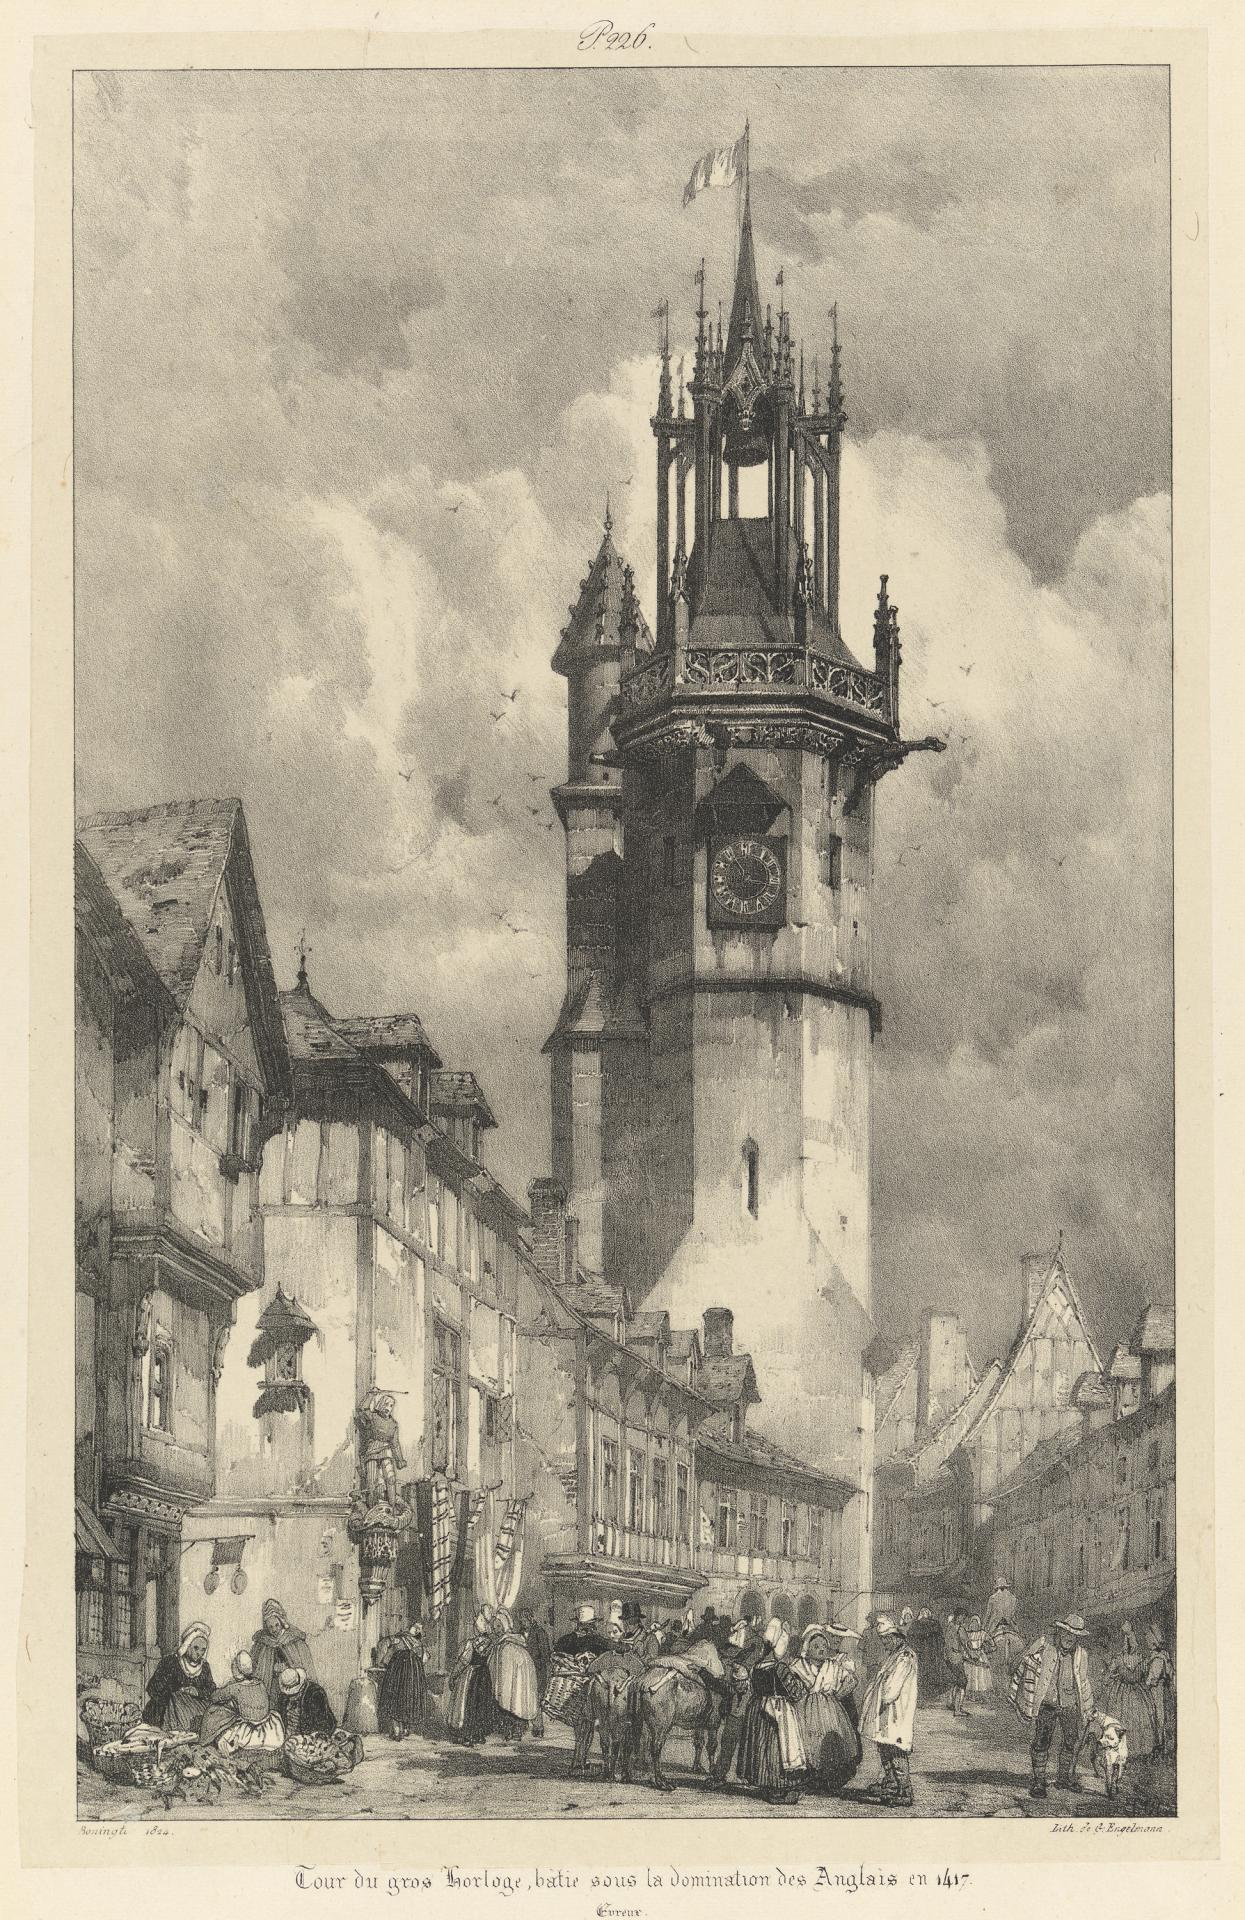 Clock tower, built under the rule of the English in 1417, Evreux